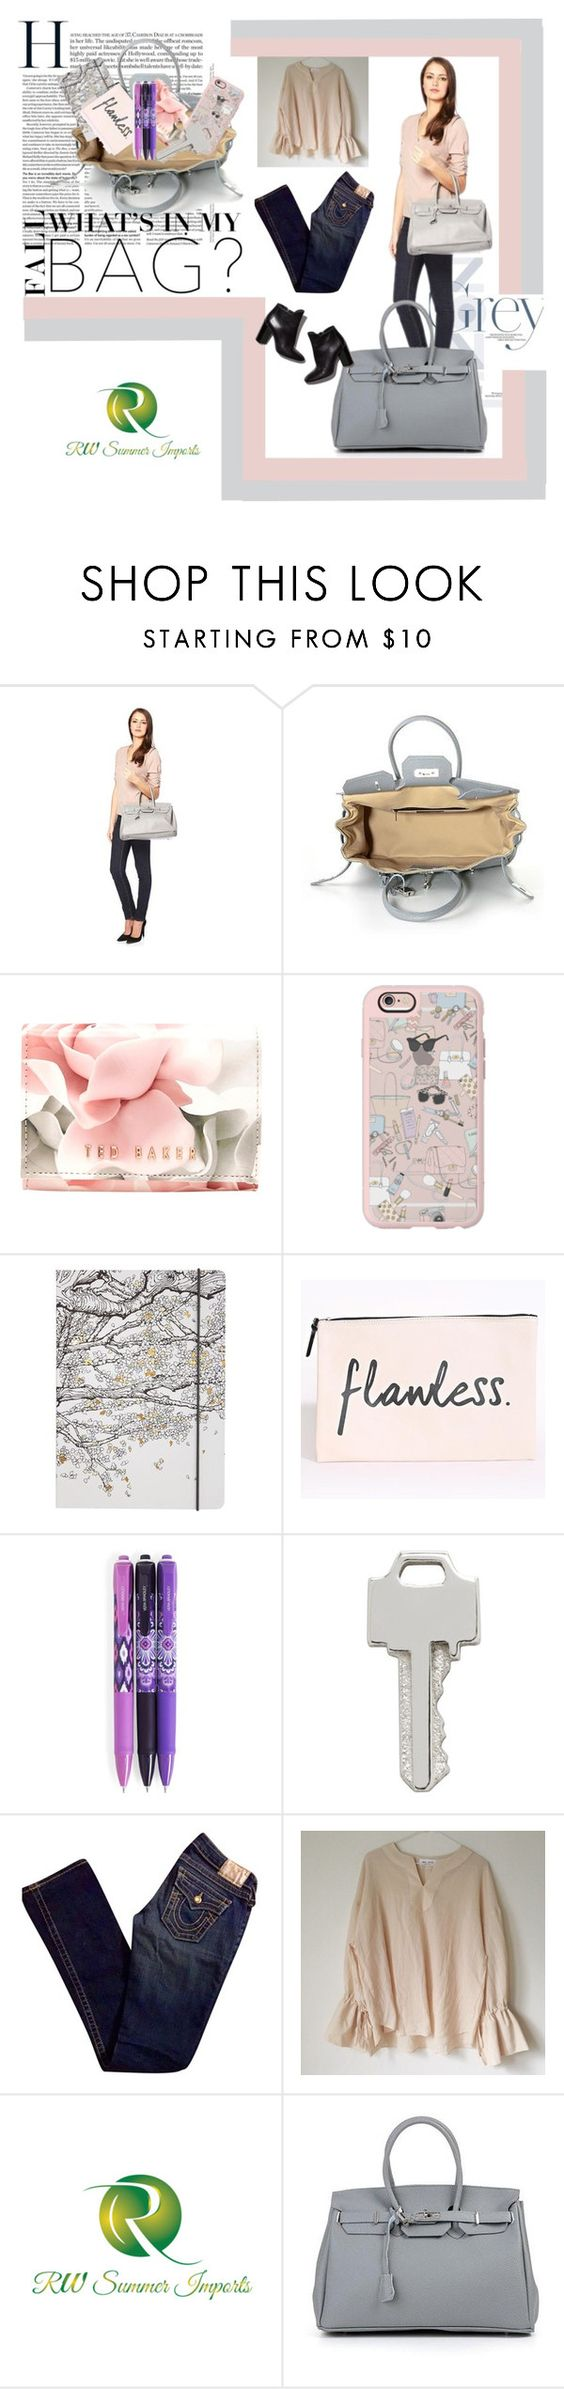 """""""What's in my fall bag?"""" by elisabetta-negro ❤ liked on Polyvore featuring Ted Baker, Casetify, Go Stationery, Vera Bradley, Lauren Klassen, True Religion and Pierre Hardy"""